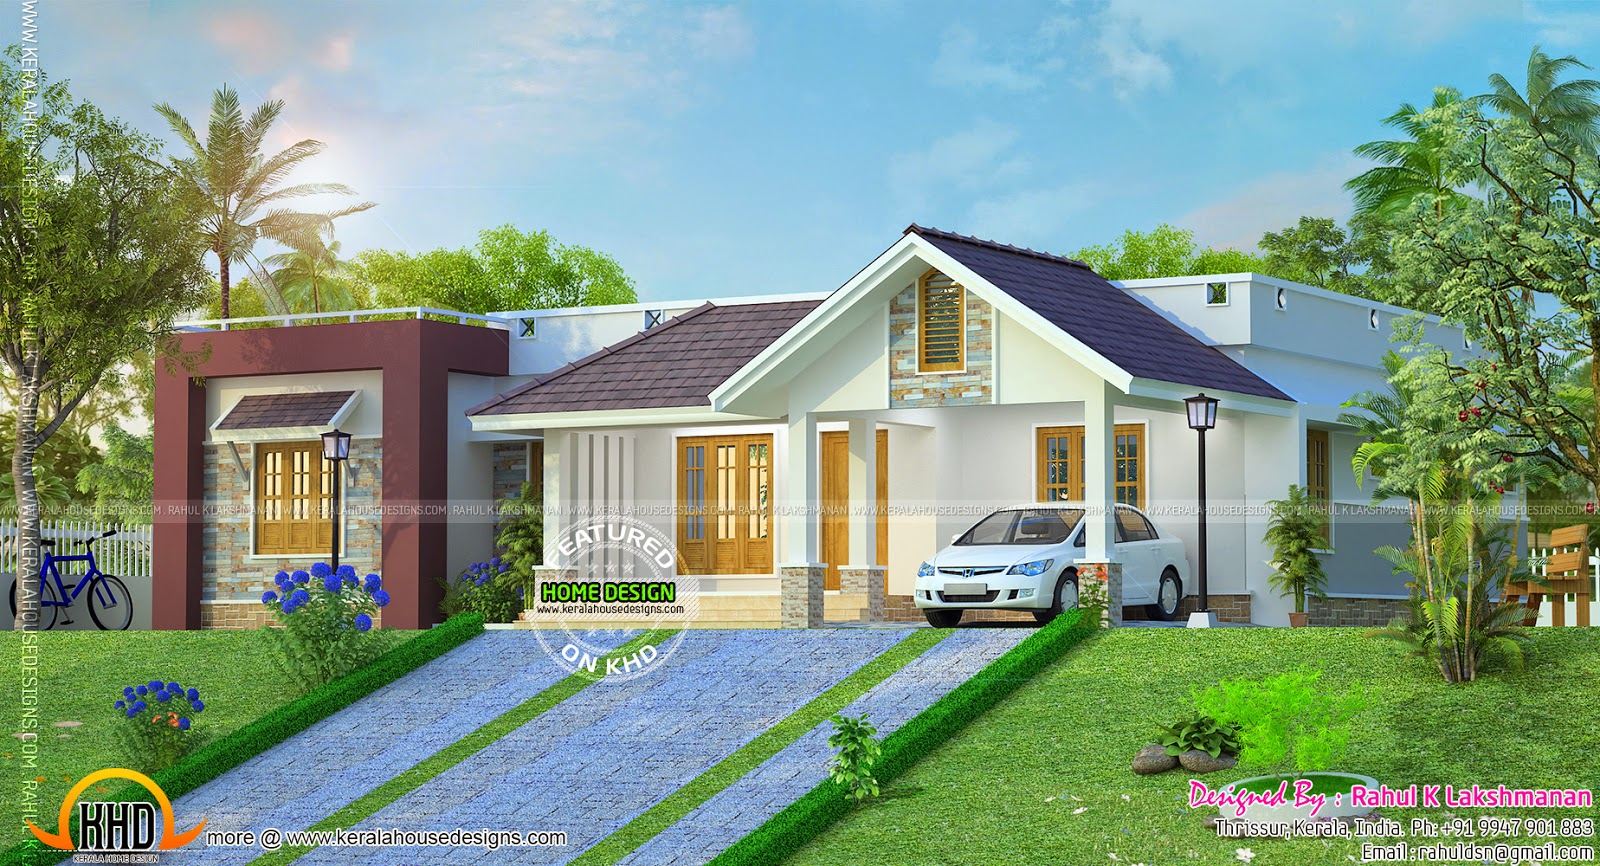 Hillside home plan kerala home design and floor plans for Slope home design